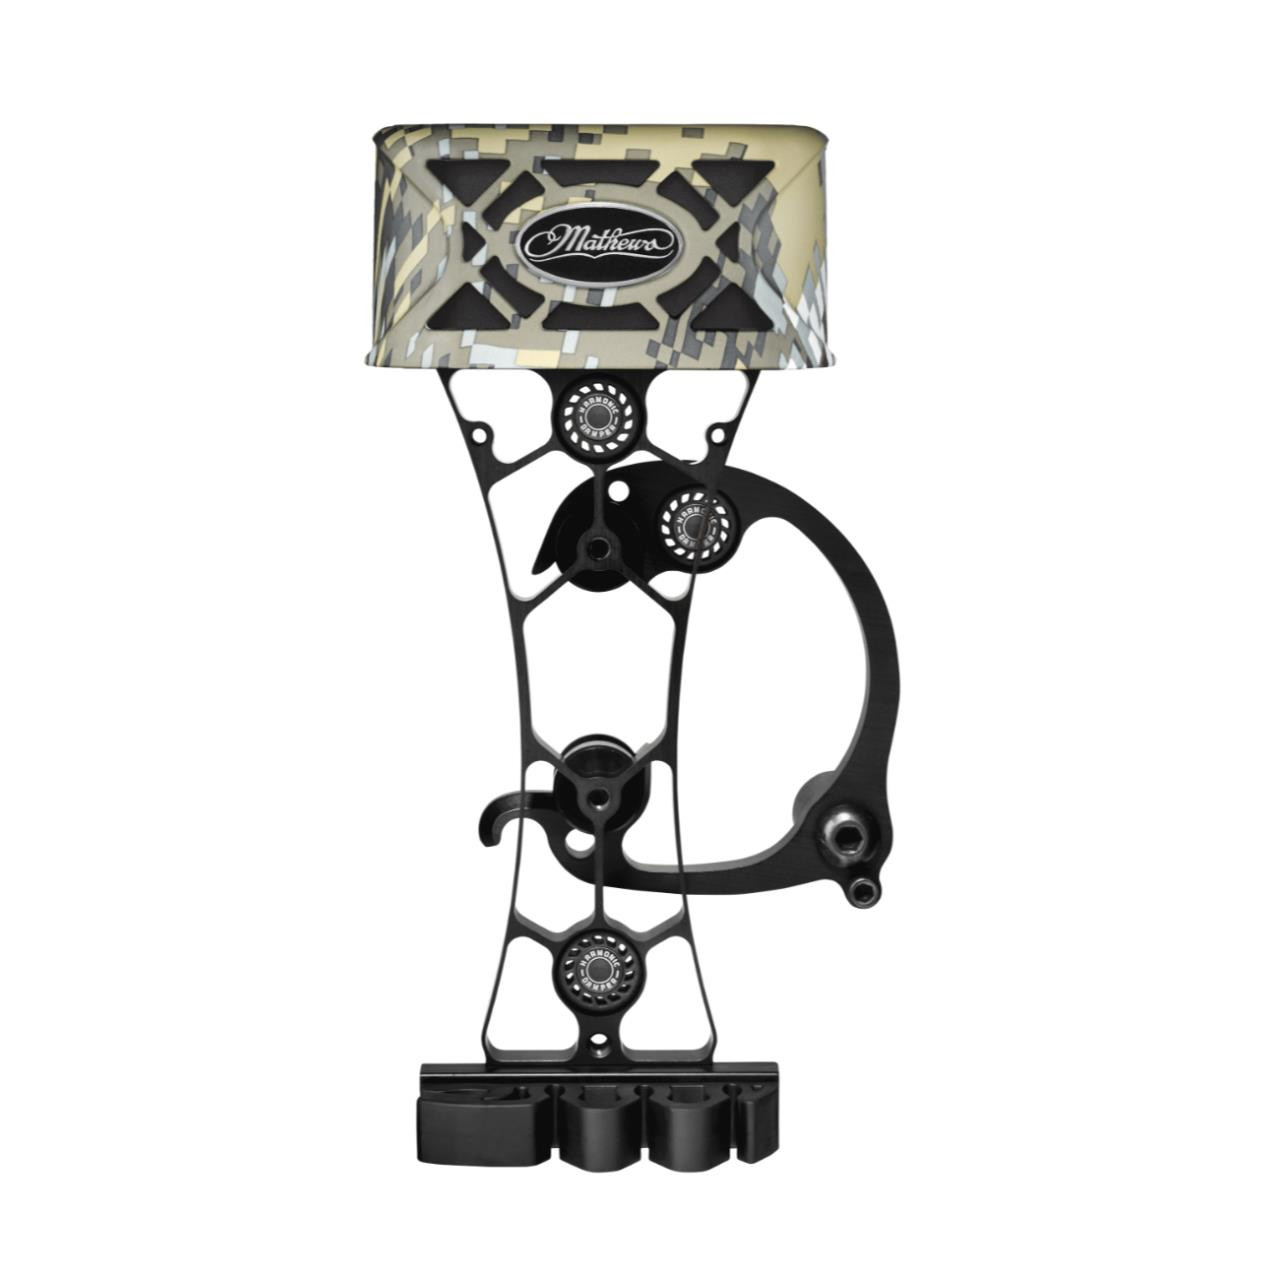 Mathews Web HD Quiver - 720770012231